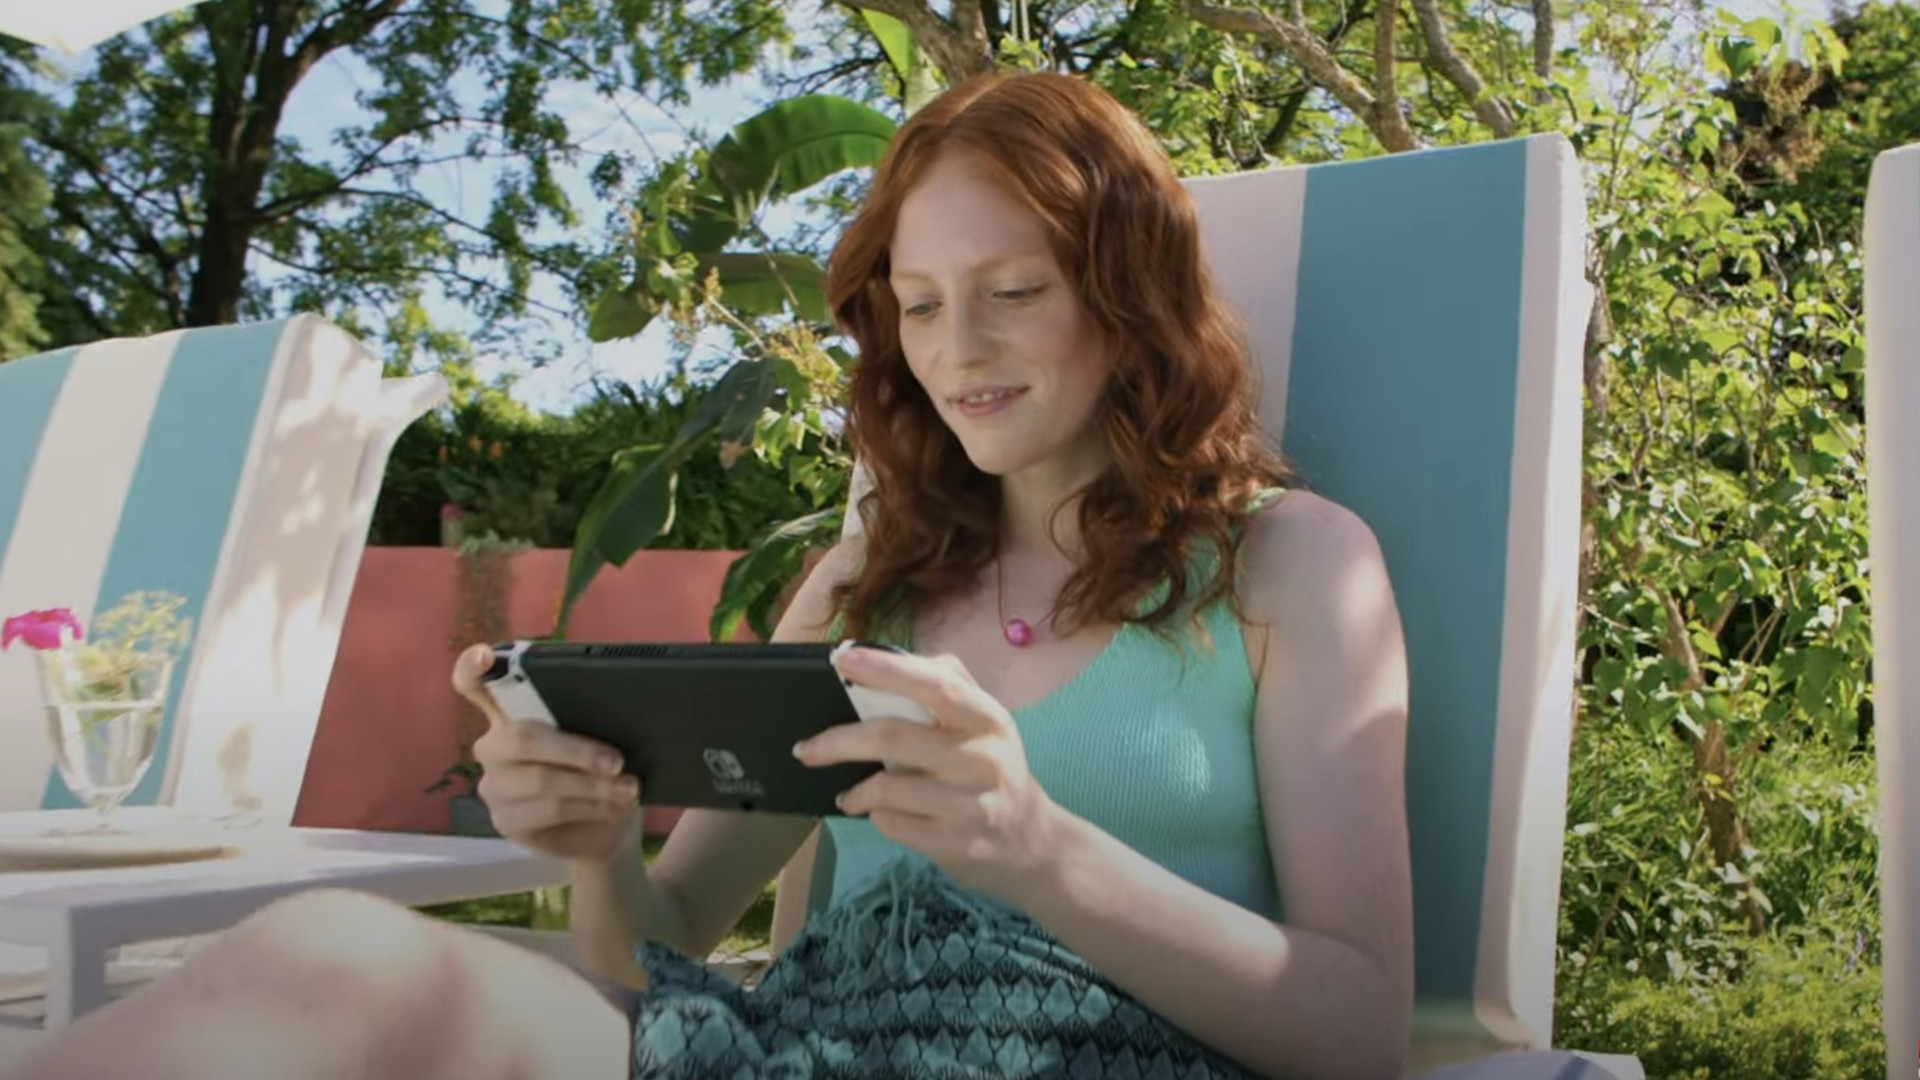 nintendo-switch-pro-could-still-happen,-according-to-analyst